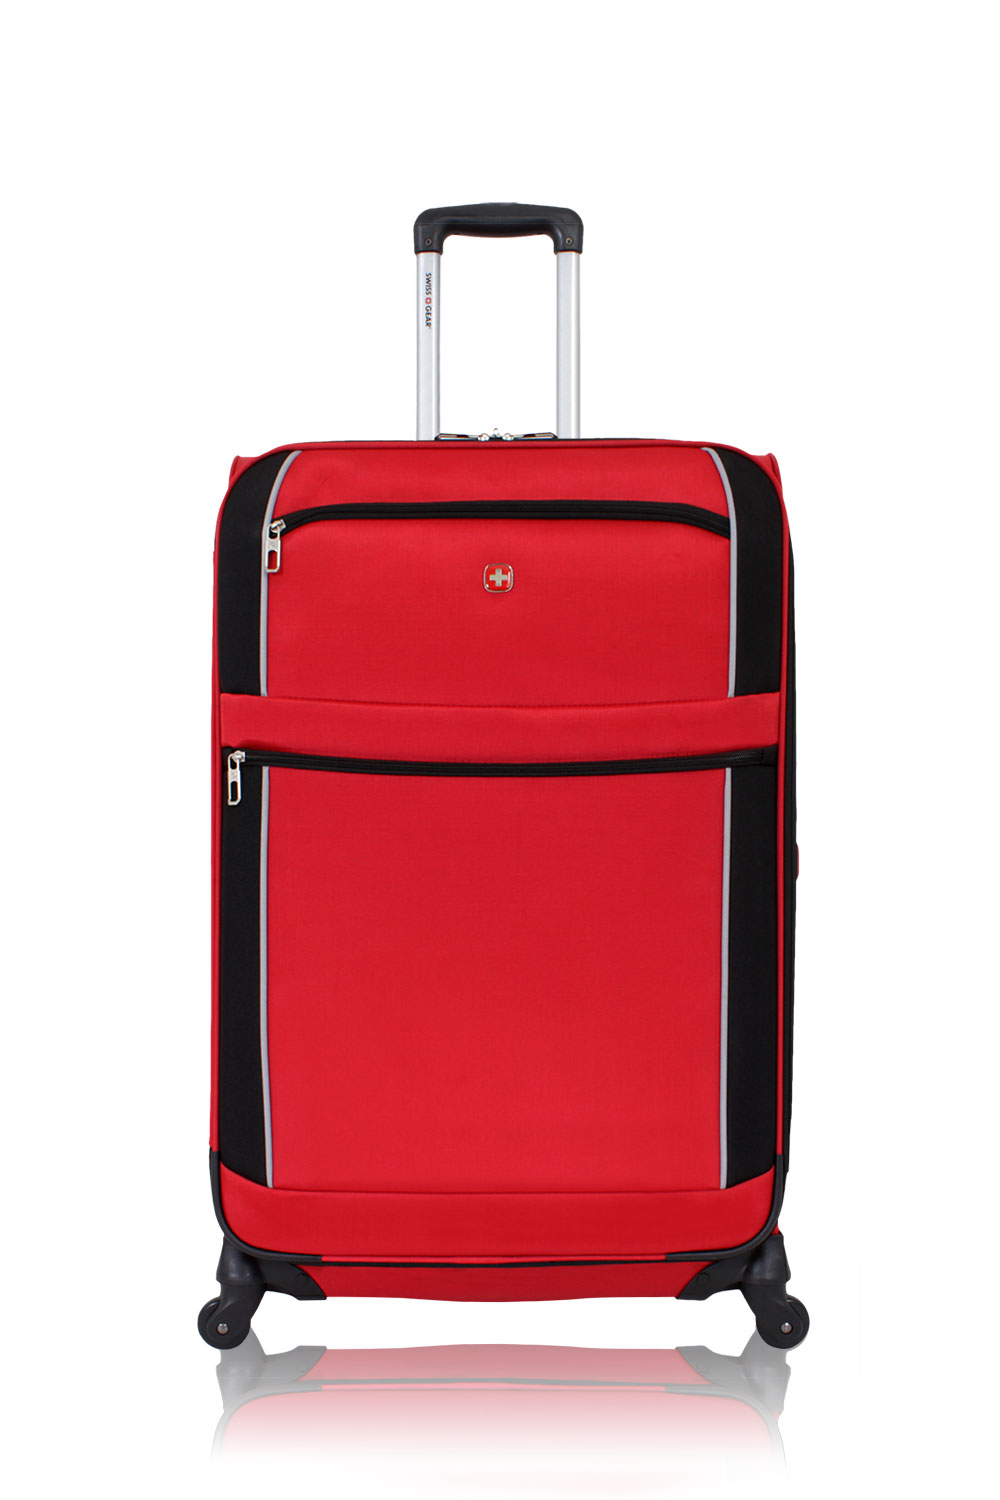 Swissgear 7317 28 Expandable Spinner Black Red Luggage